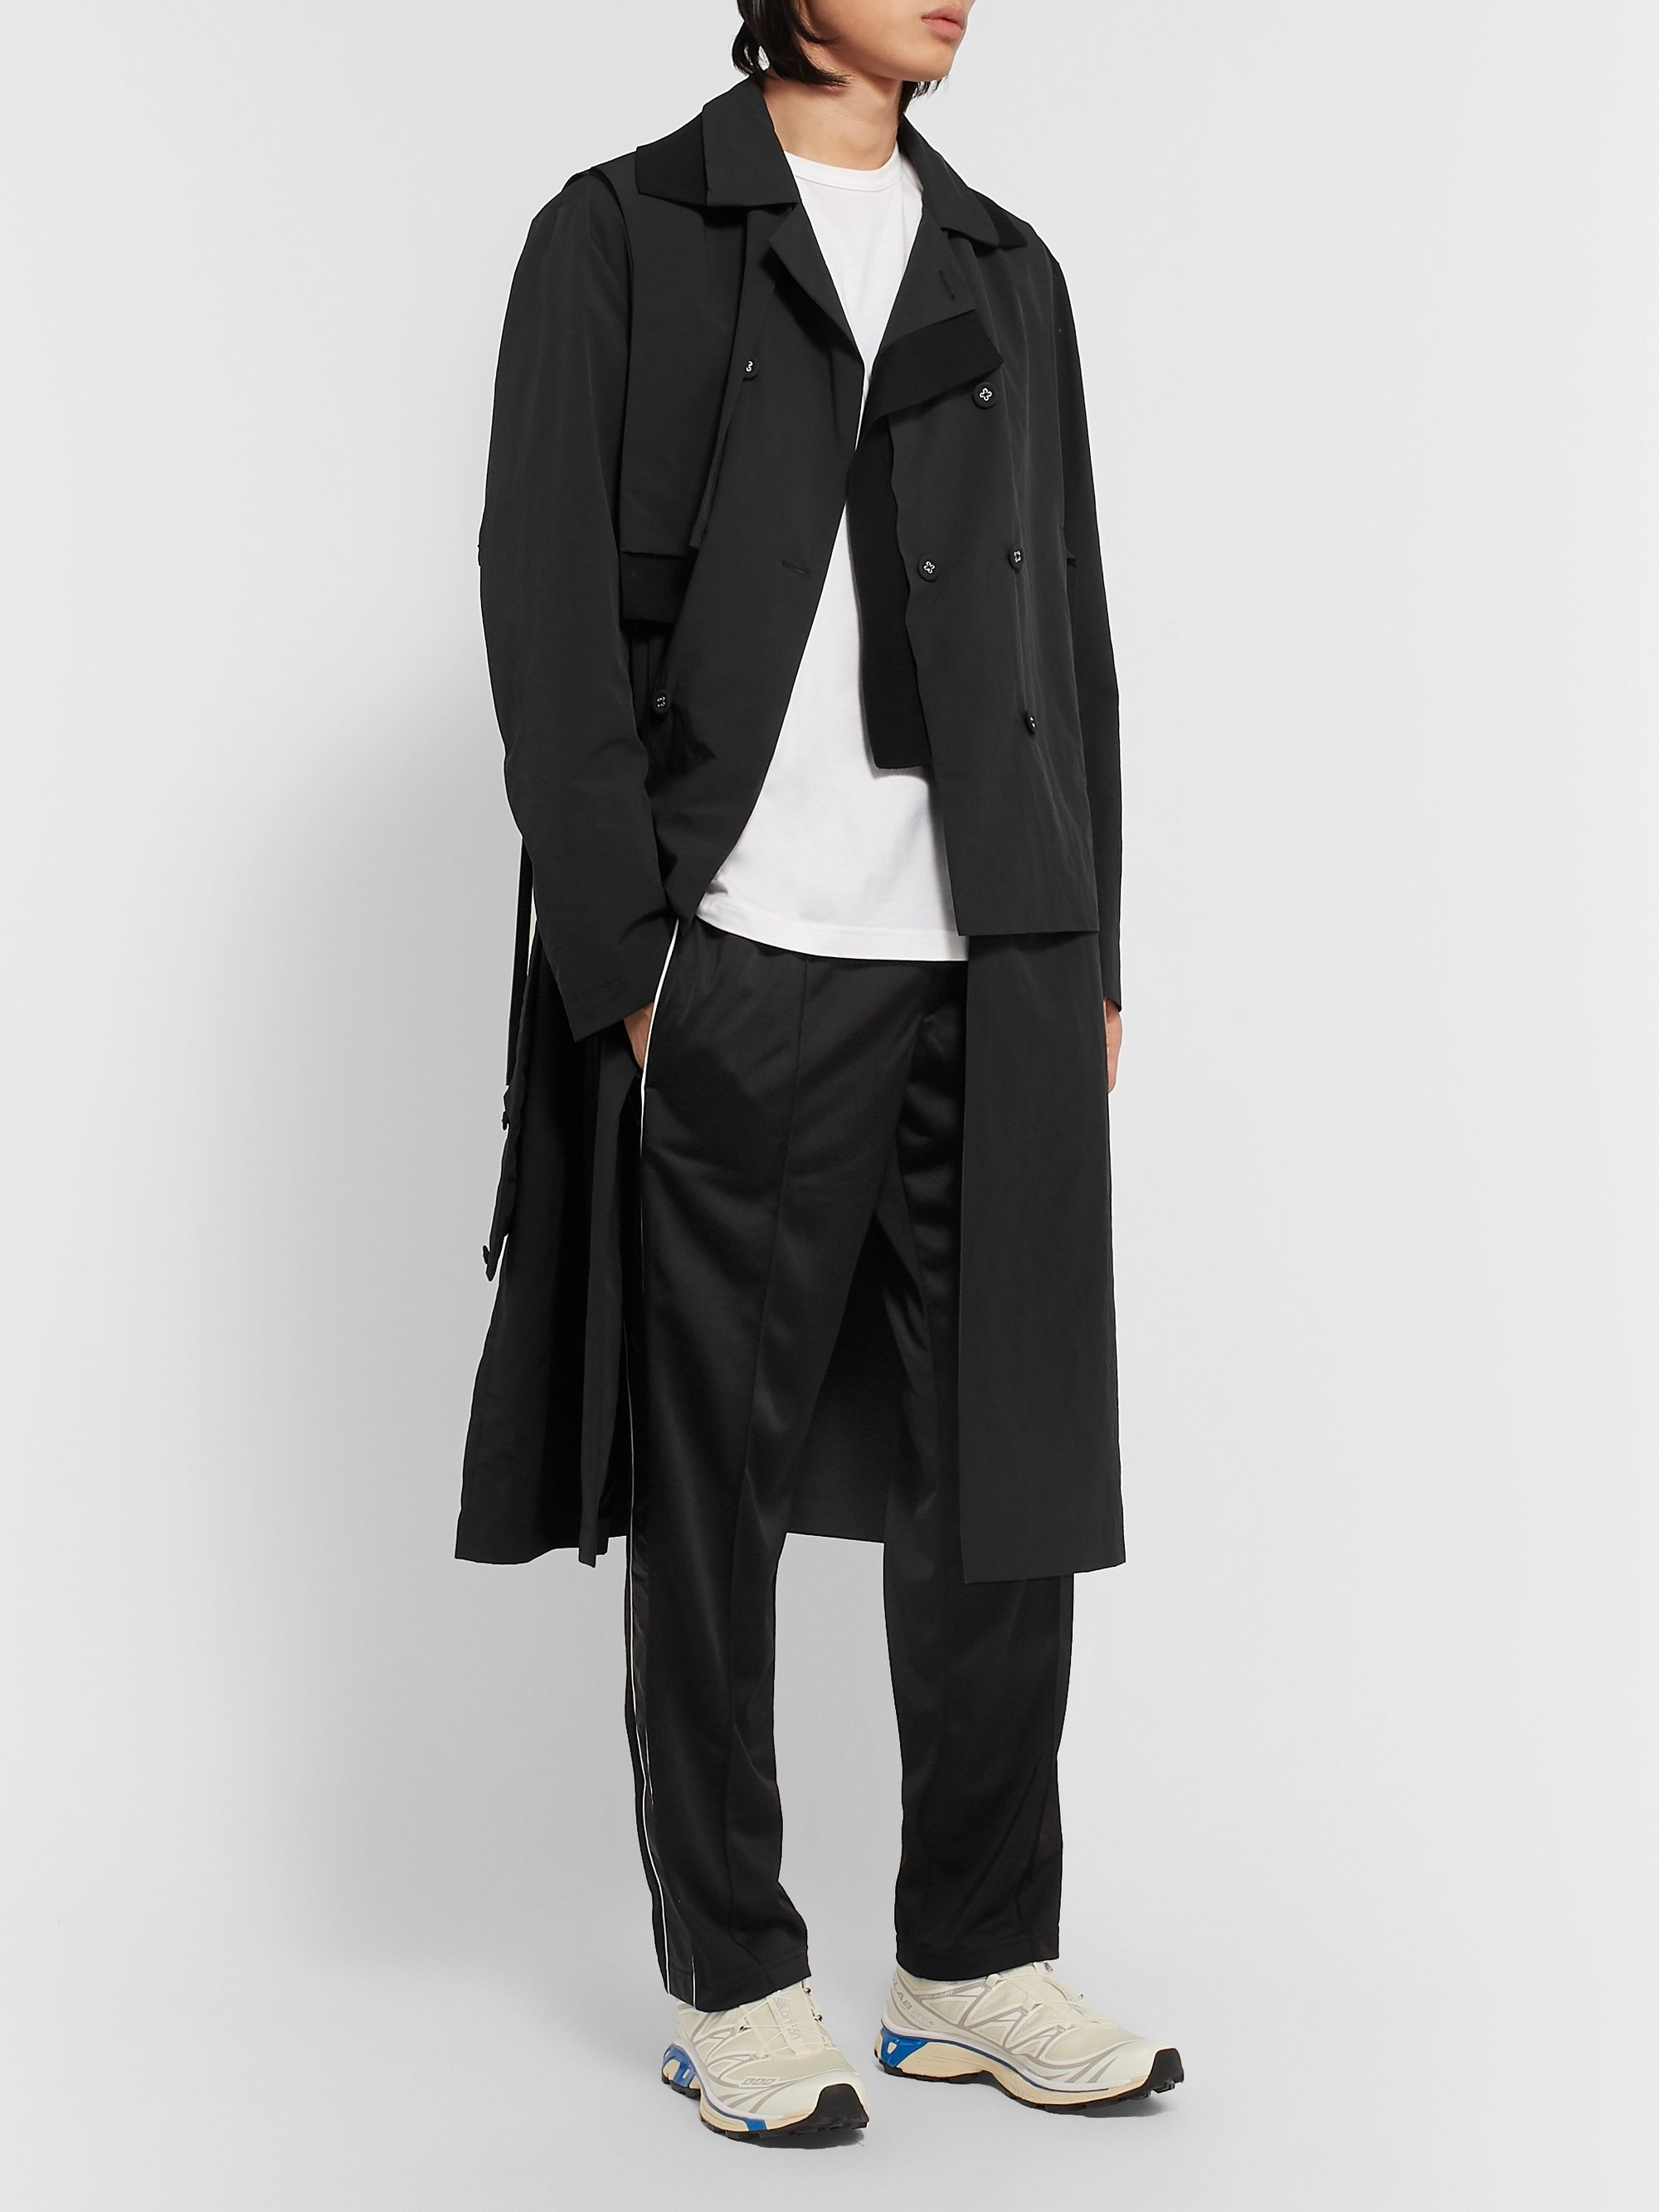 Craig Green Panelled Shell Trench Coat